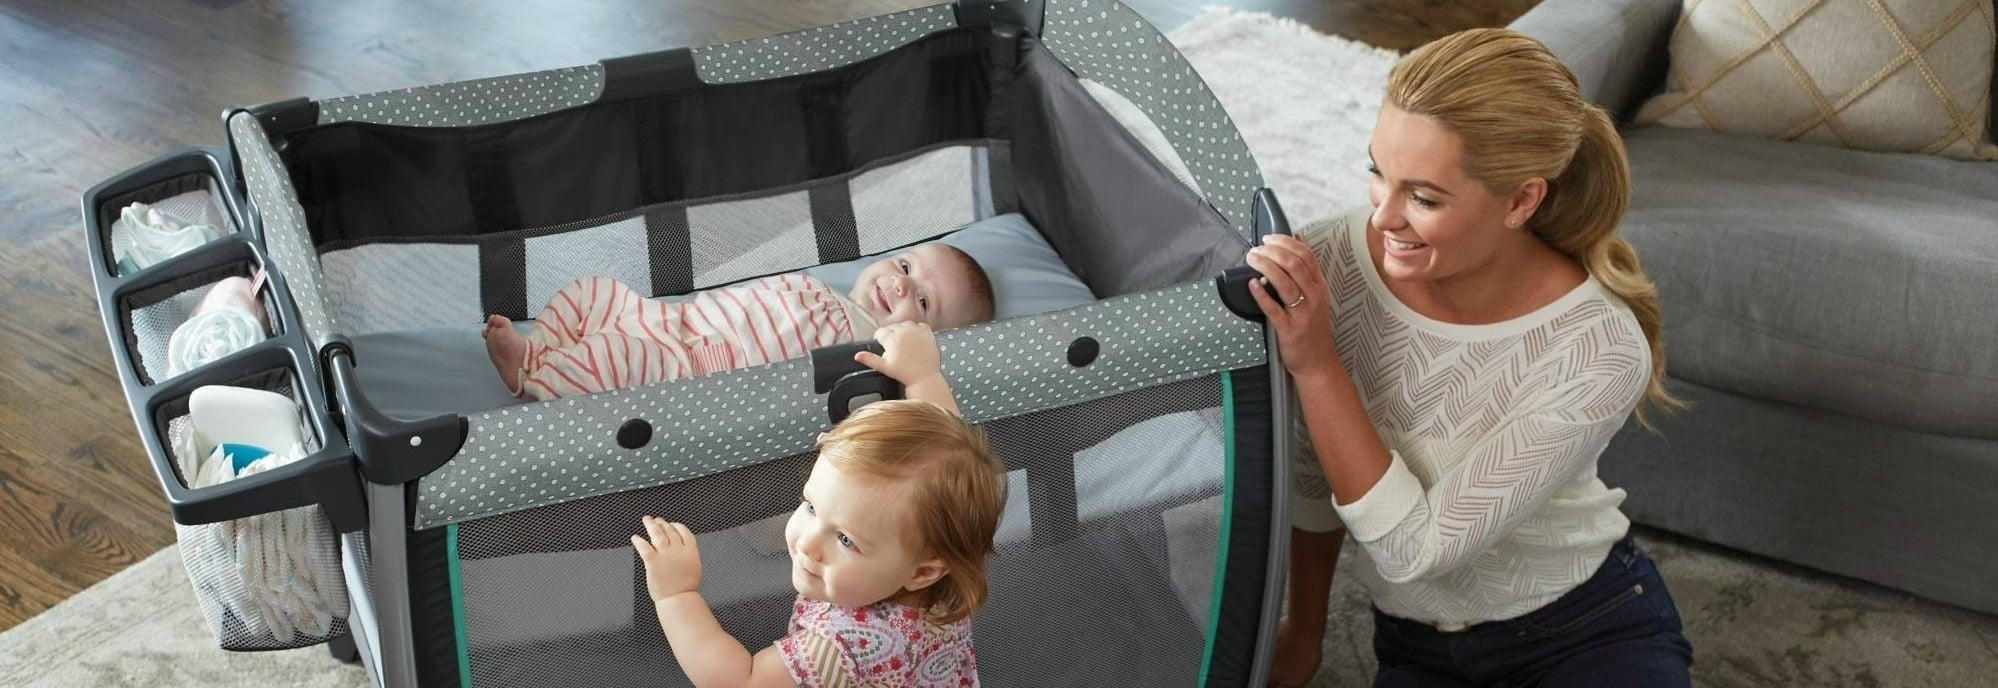 Best Mattresses for Graco Pack N' Play Reviewed in Detail